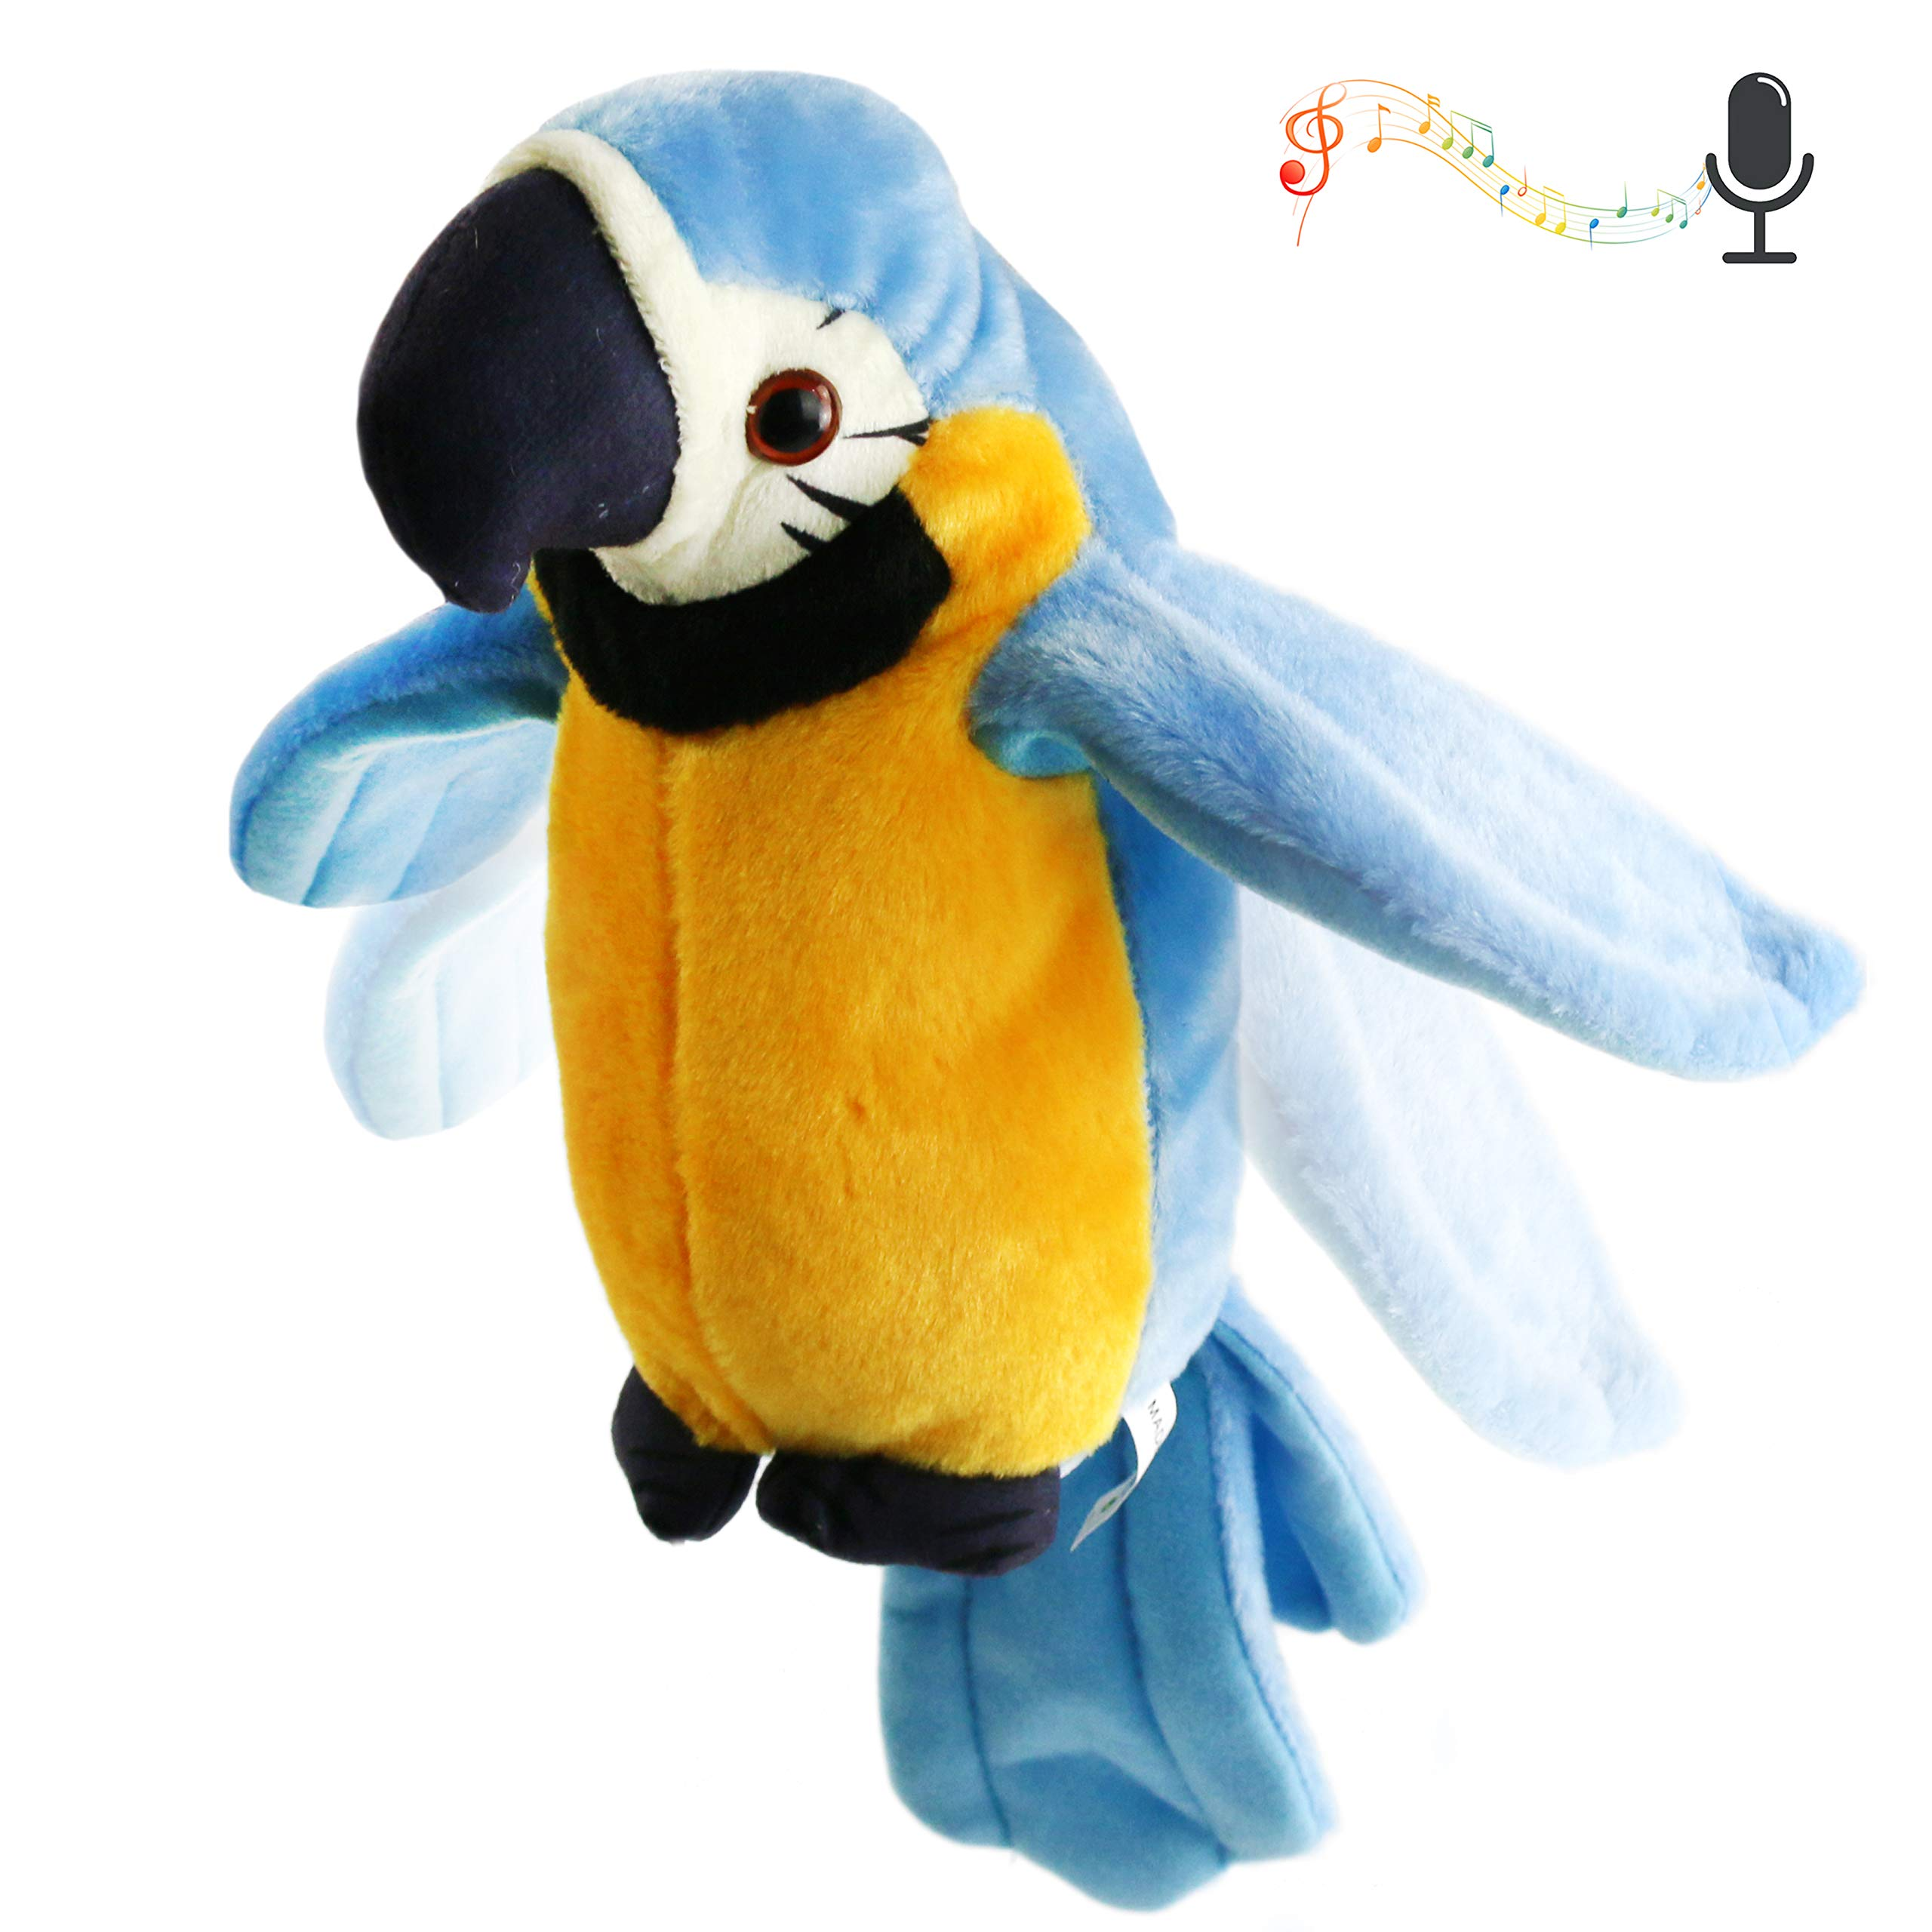 Houwsbaby Talking Stuffed Parrot Repeat What You Say Electronic Bird Speaking Pet Waving Wings Plush Toy Interactive Animated Gift for Kids Boys Girls Holiday Birthday Spring, 9'' (Blue)